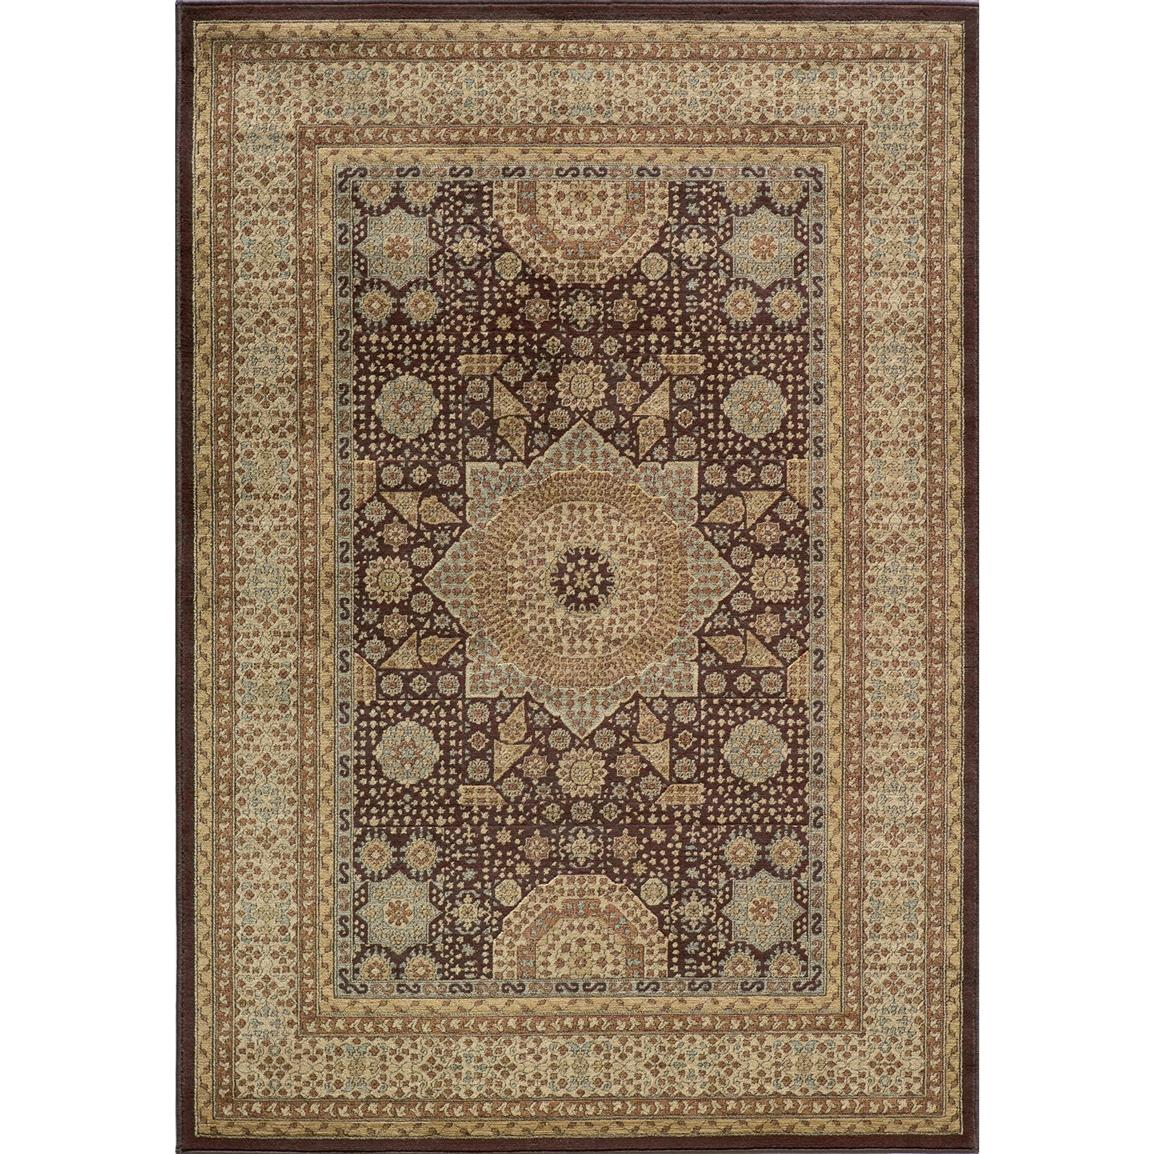 Momeni® Belmont Area Rug, 7 foot 10 inch x 9 foot 10 inch / BE-03, Brown